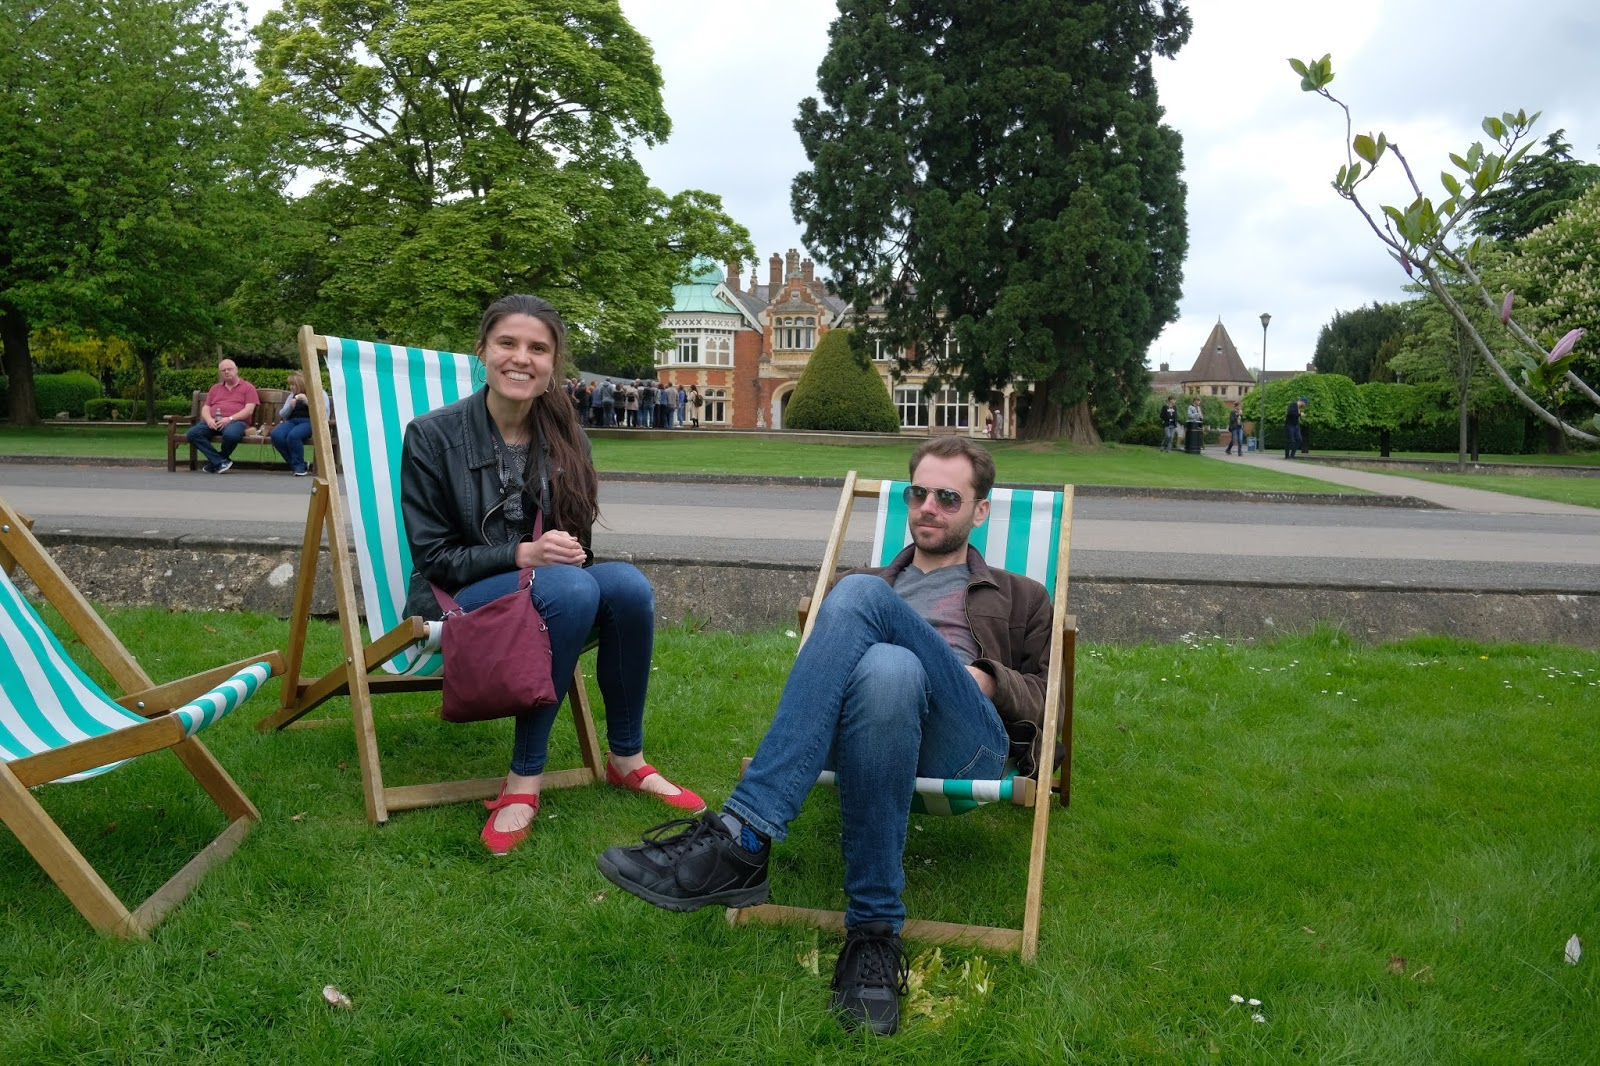 Deckchairs at Bletchley Park